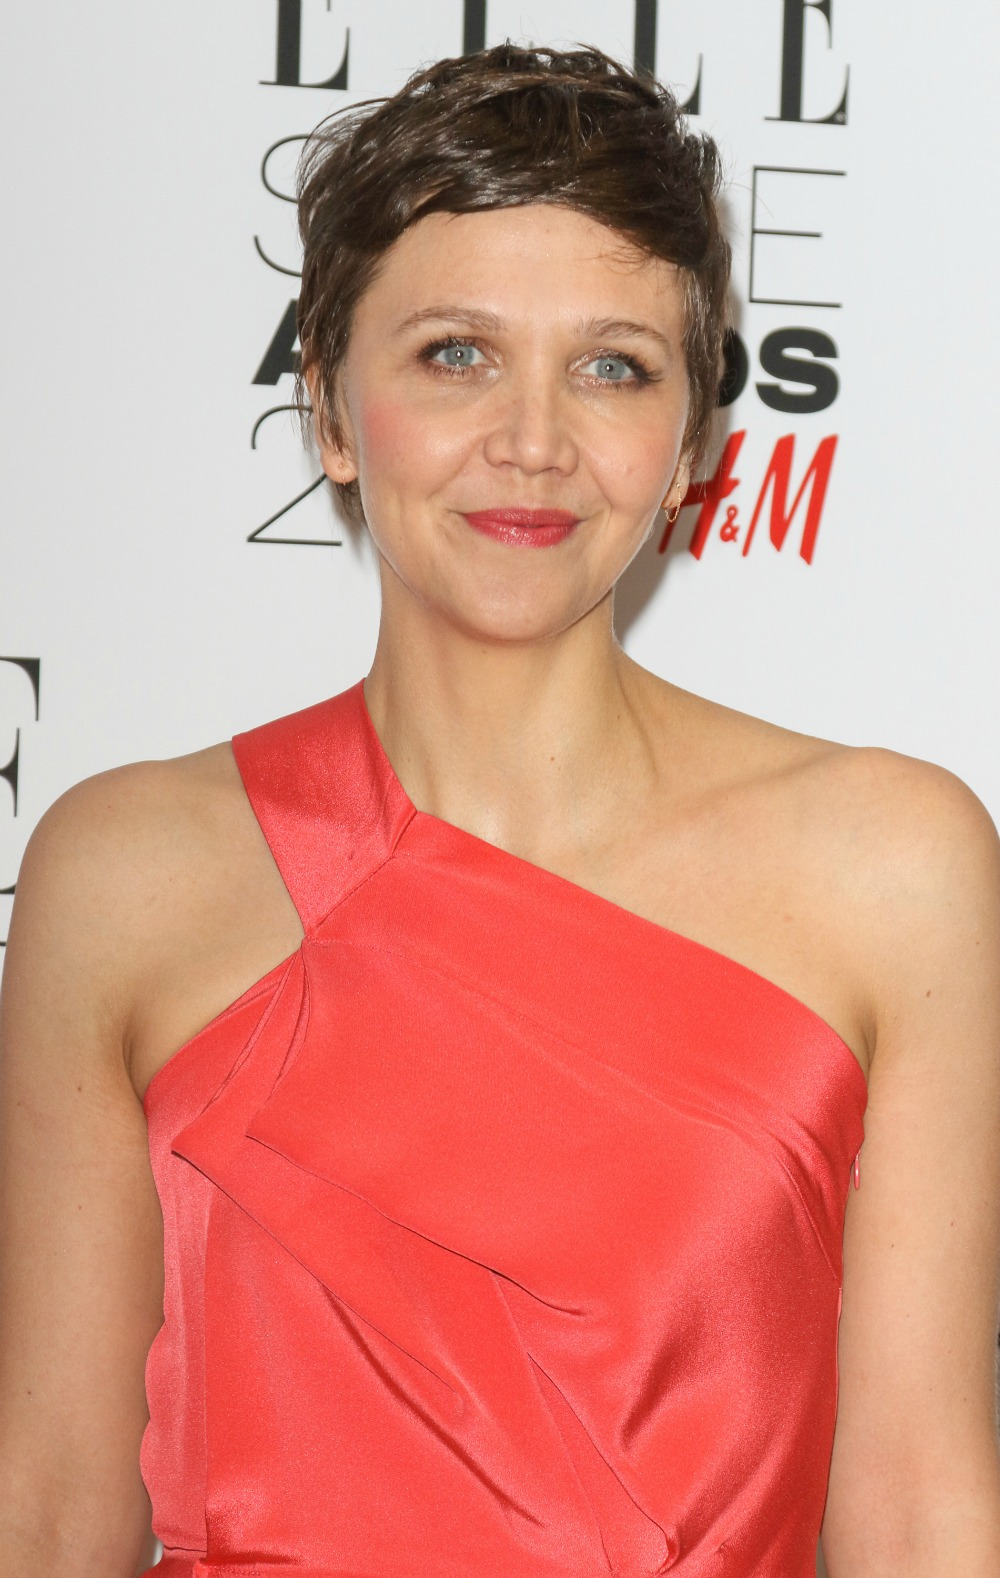 The Pixie Haircut - Celebrity Women Who Sport The Look Maggie Gyllenhaal